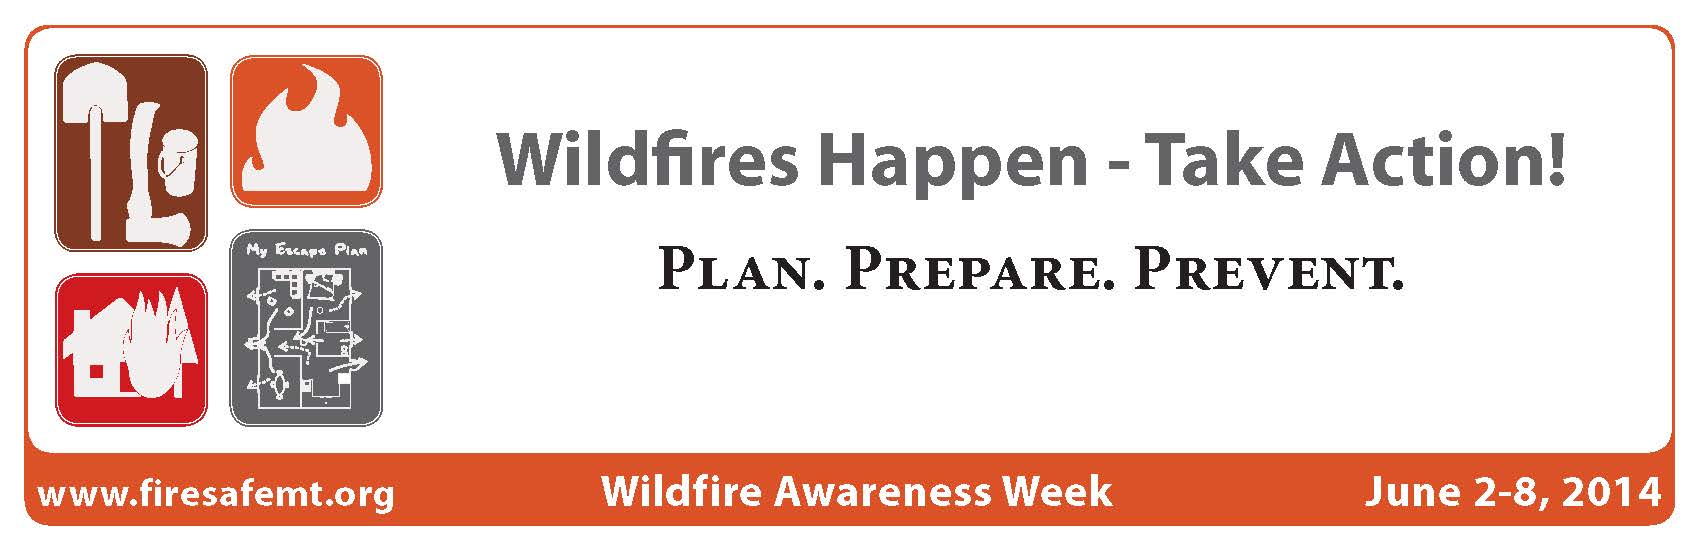 Wildfire Awareness Week_June 2014